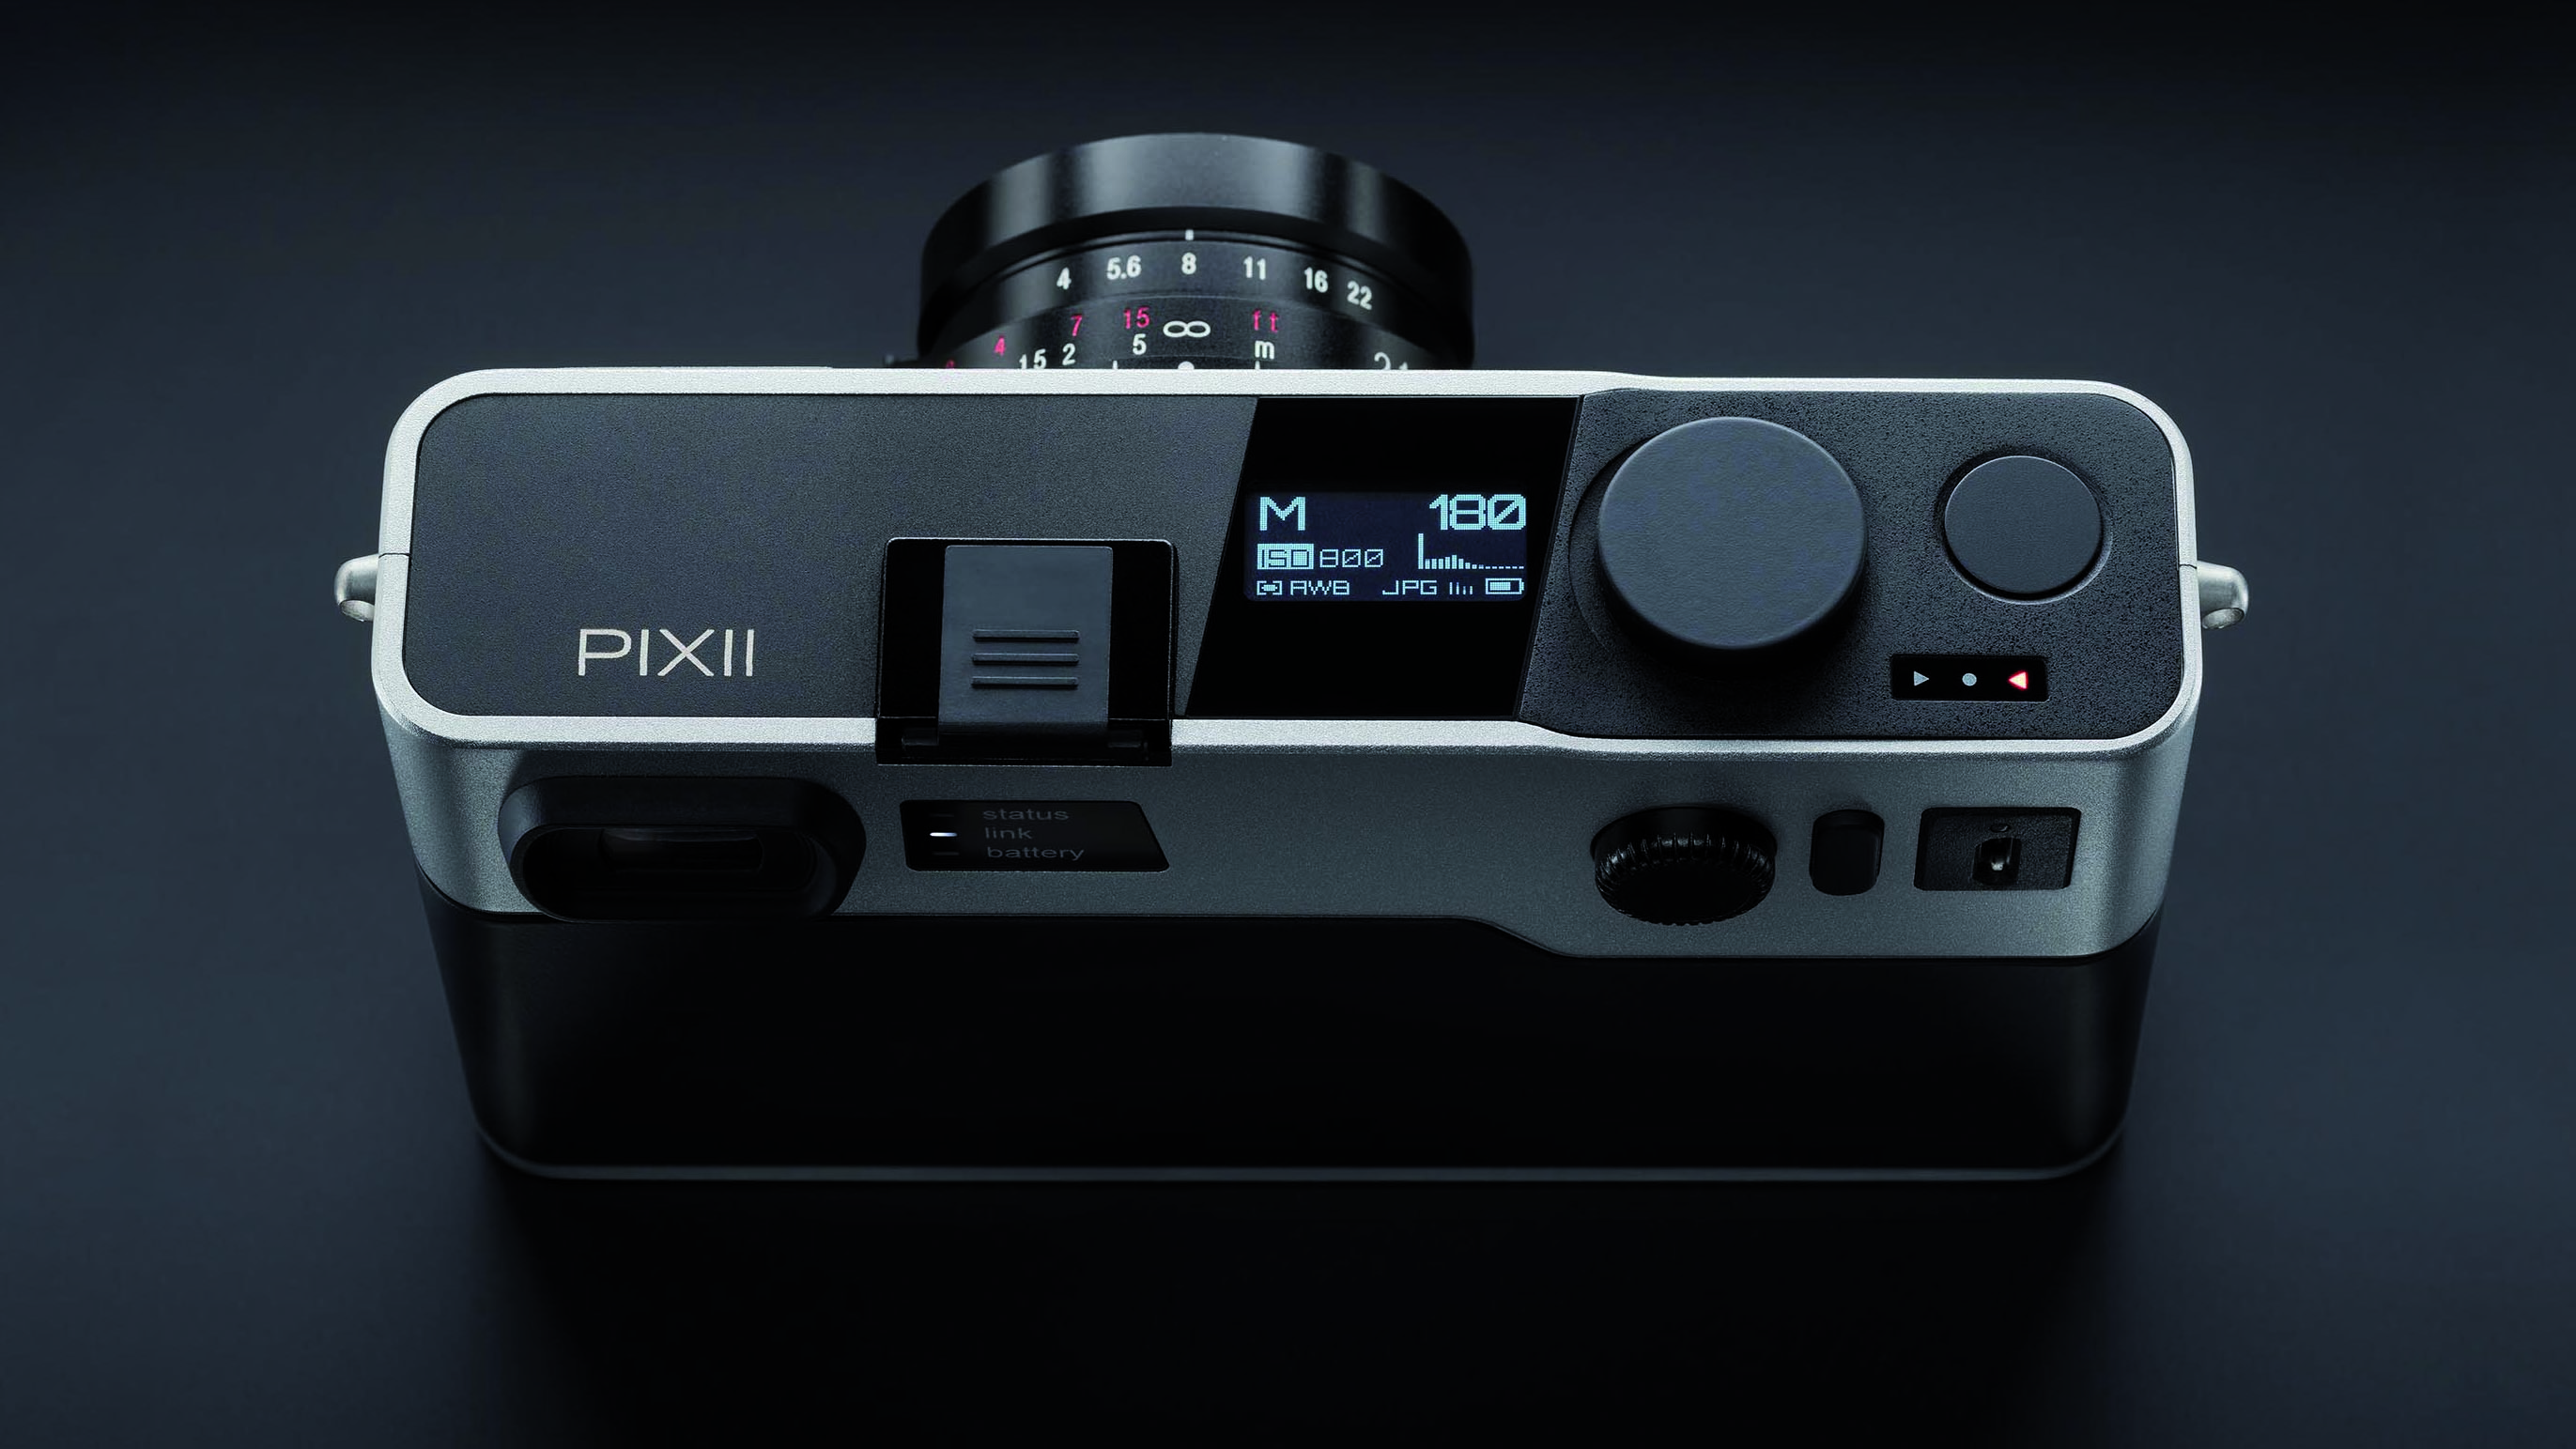 More details revealed about PIXII - the digital rangefinder that works with your phone